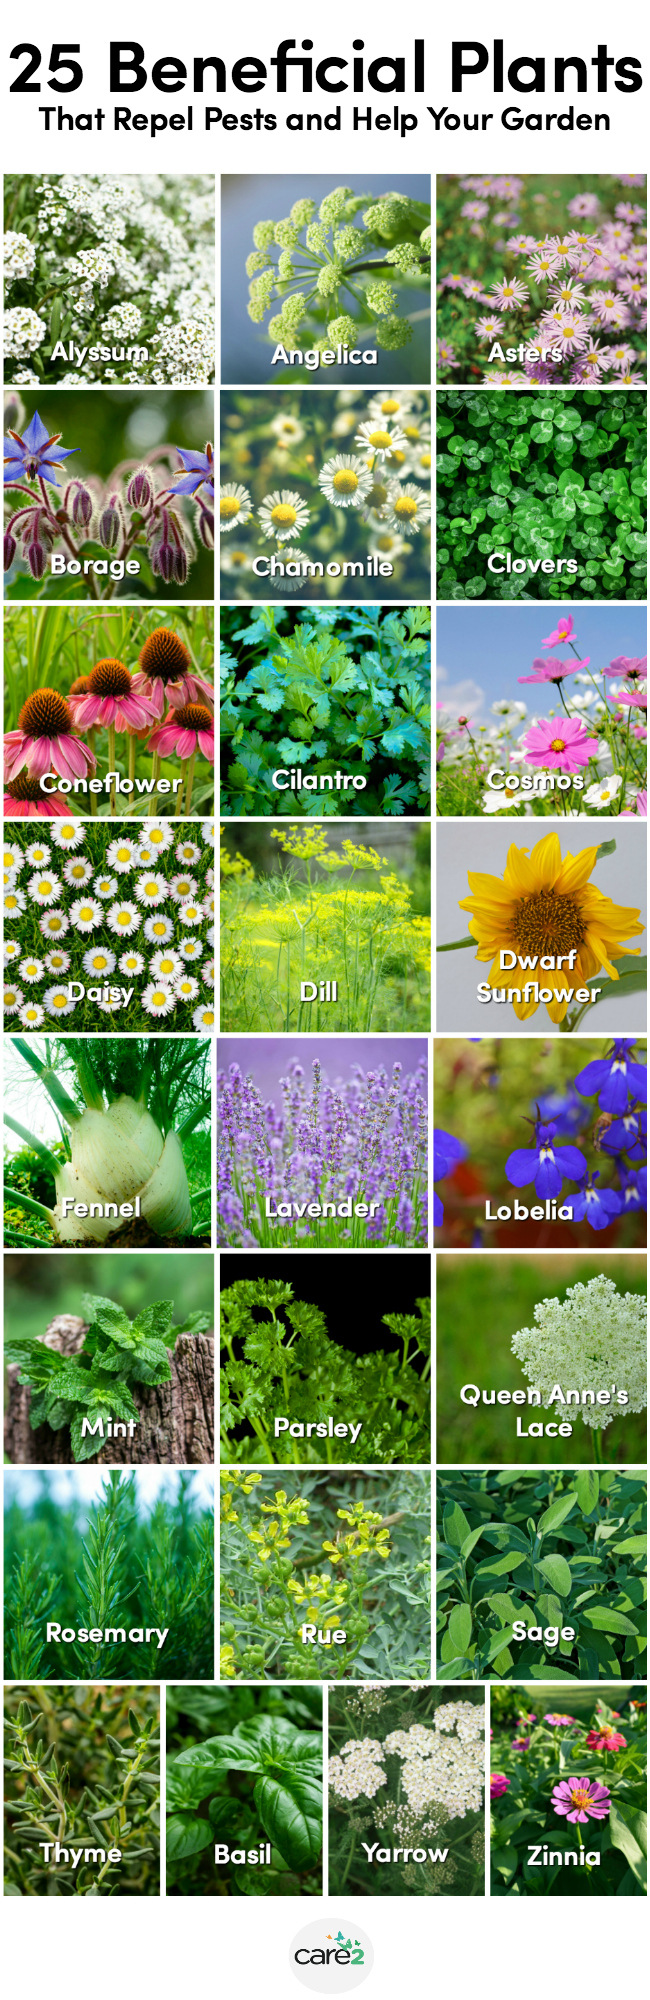 25+ Beneficial Plants for the Garden